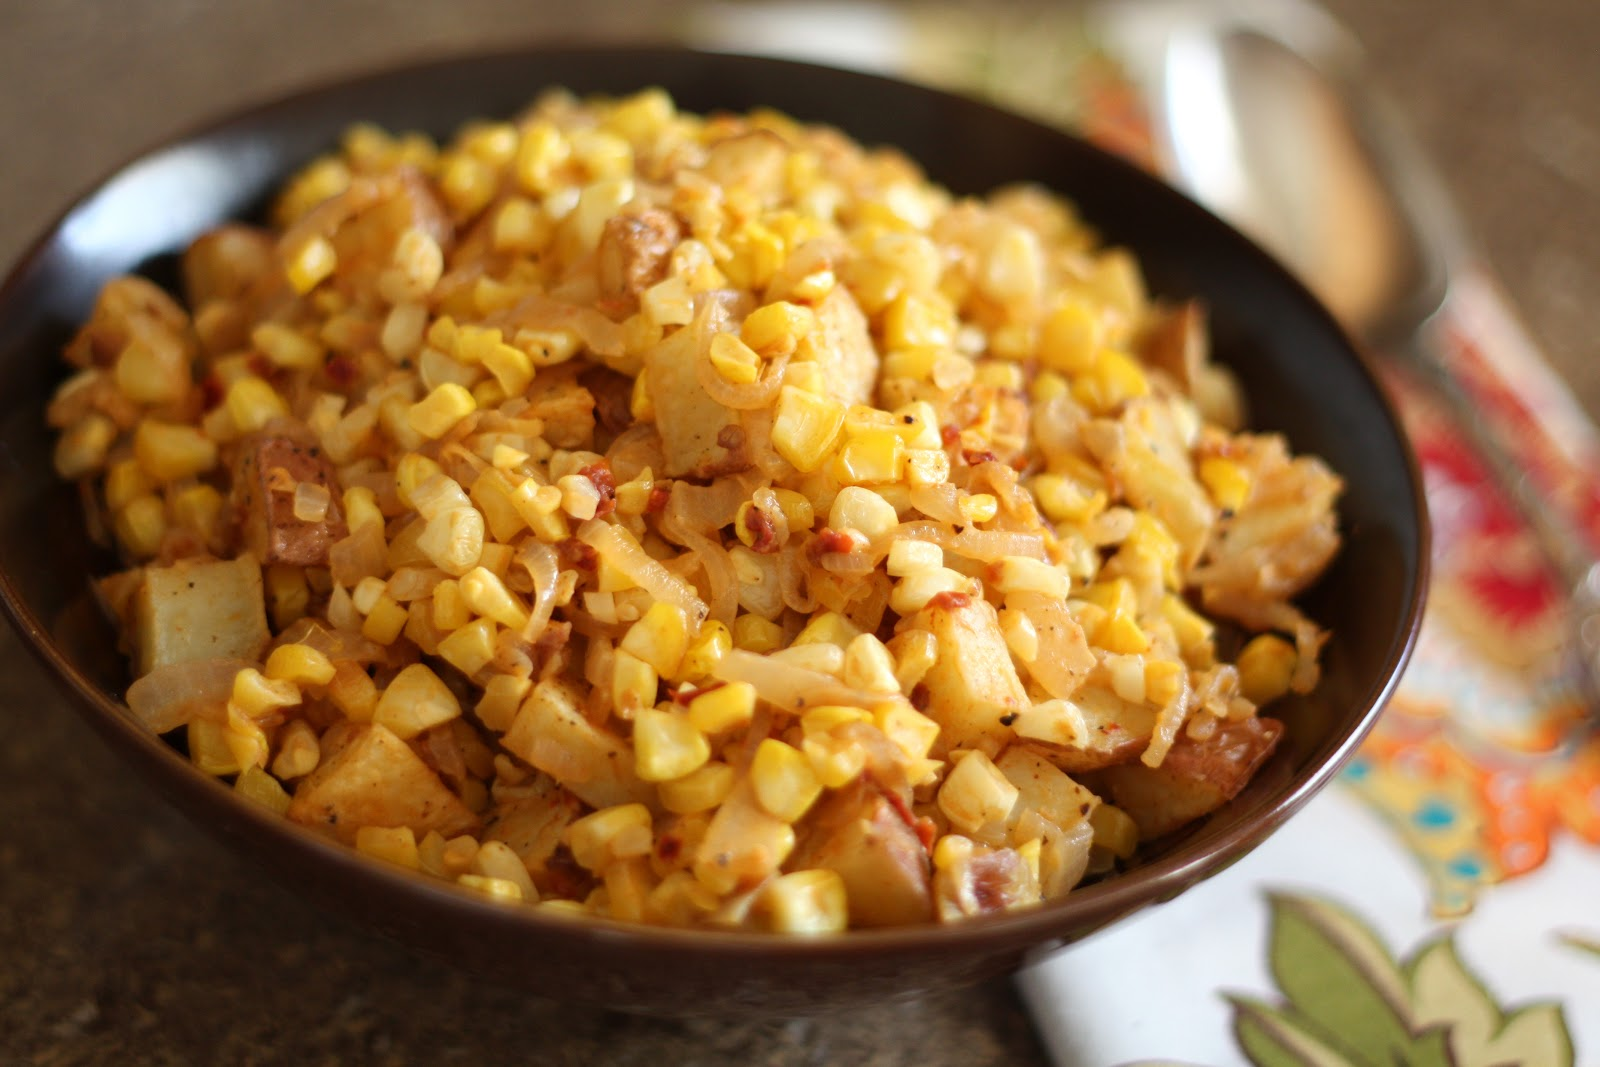 ... In The Kitchen: Chipotle Corn and Caramelized Onion Potato Salad